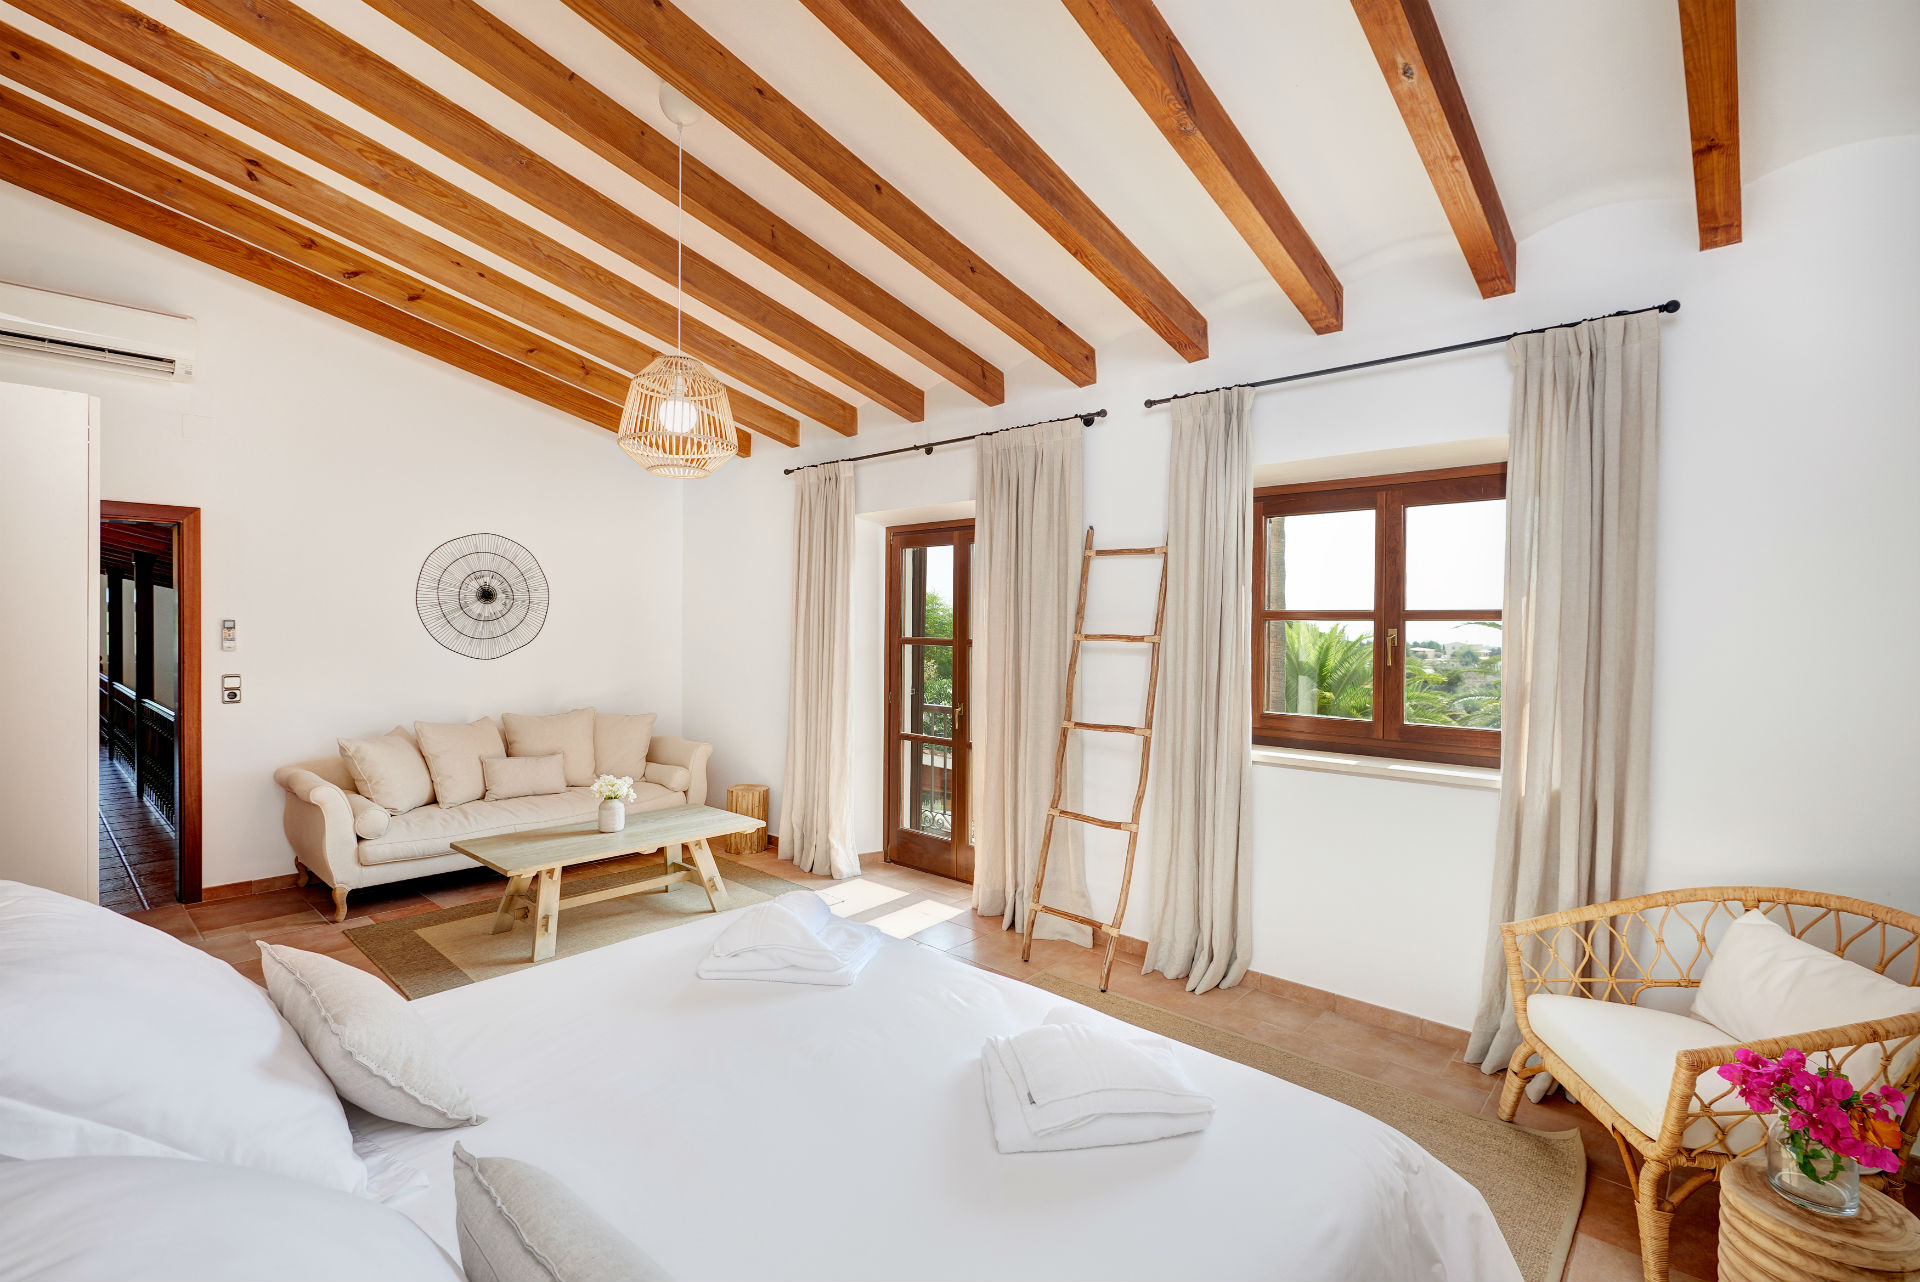 31 Casa Adrover Soller Room View 1